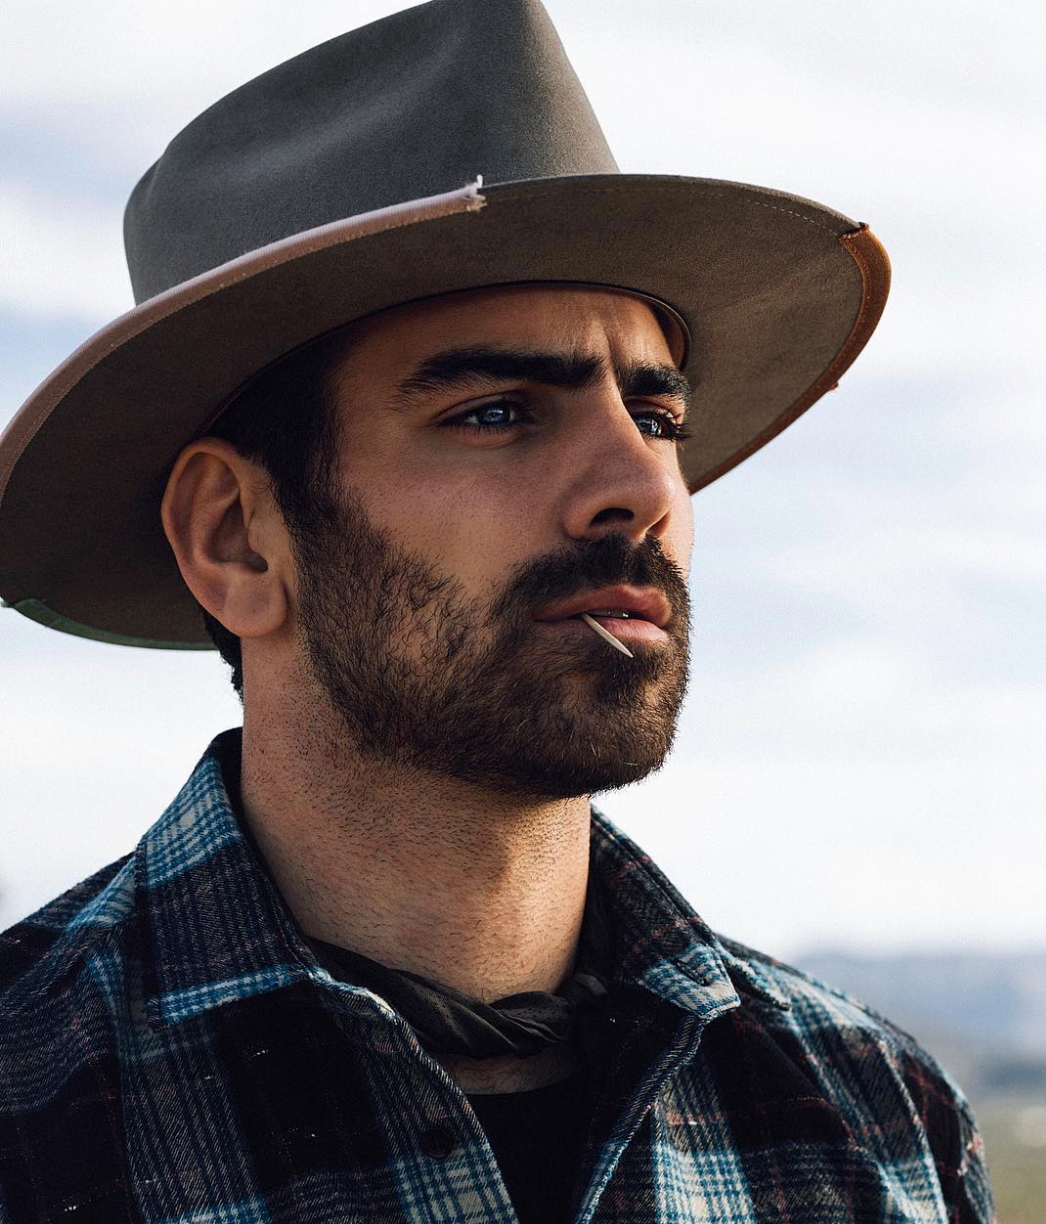 Nyle DiMarco famosos LGBT+ discapacidades invisibles